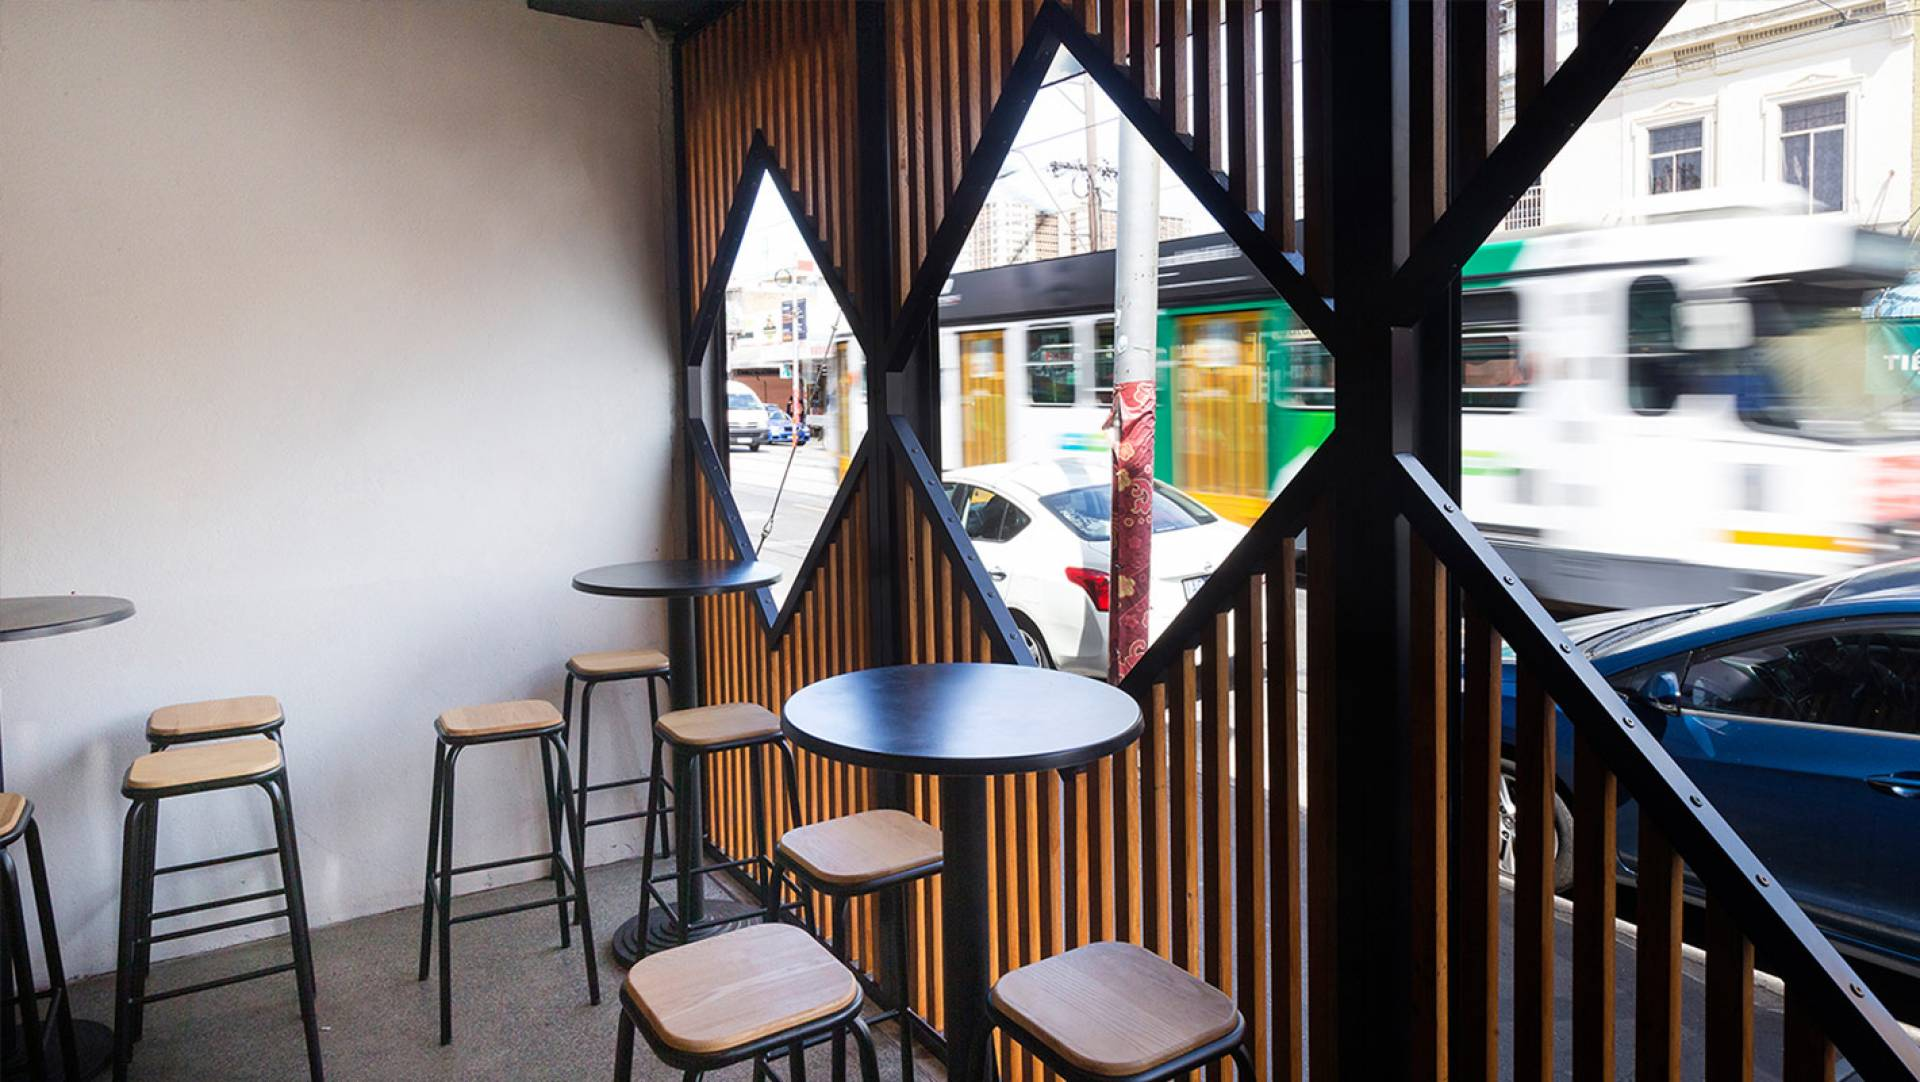 Restaurant Design Melbourne - On It Burger